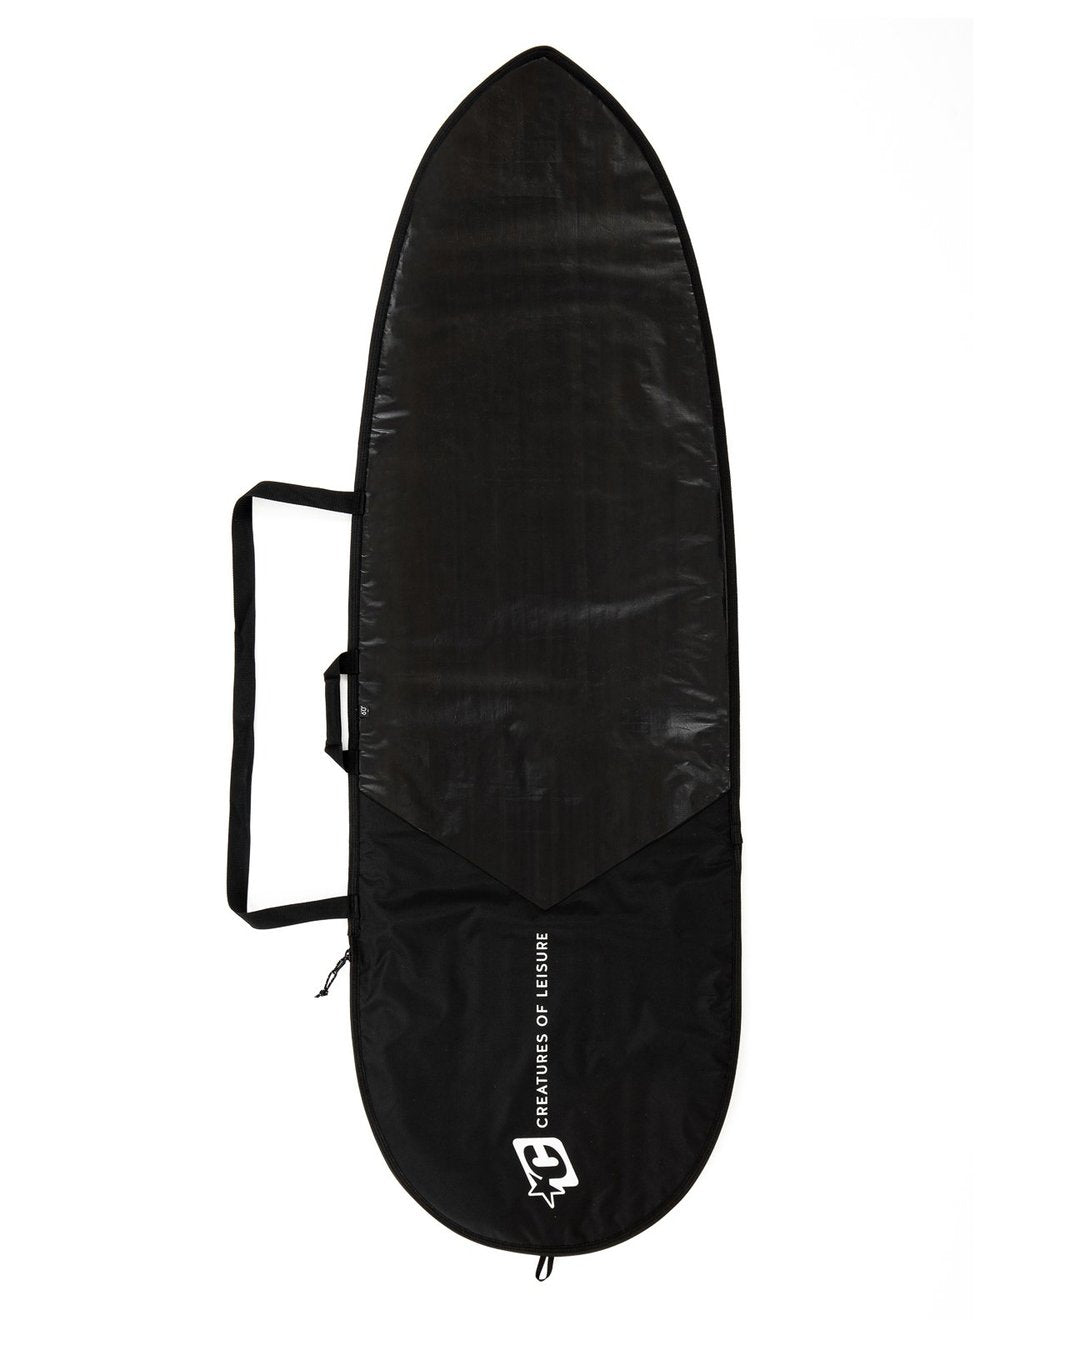 Creatures FISH ICON LITE 6'0'' : BLACK SILVER - Board Store CreaturesBoardcover